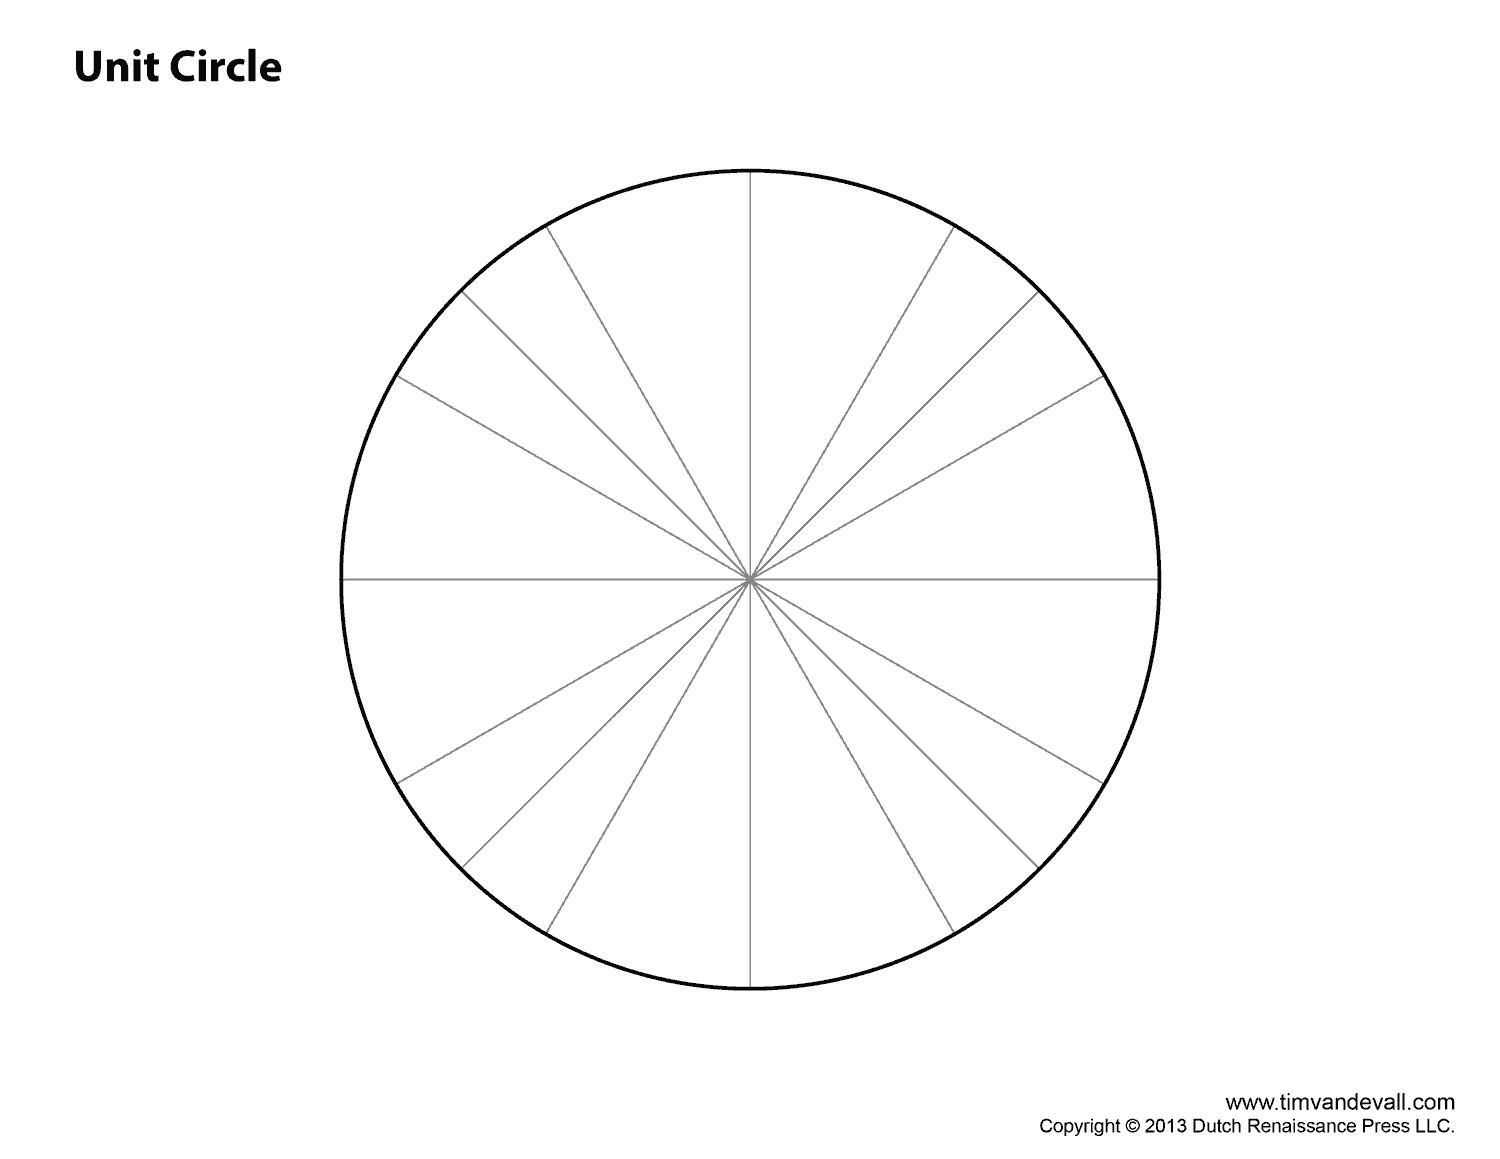 Ridiculous image pertaining to unit circle printable